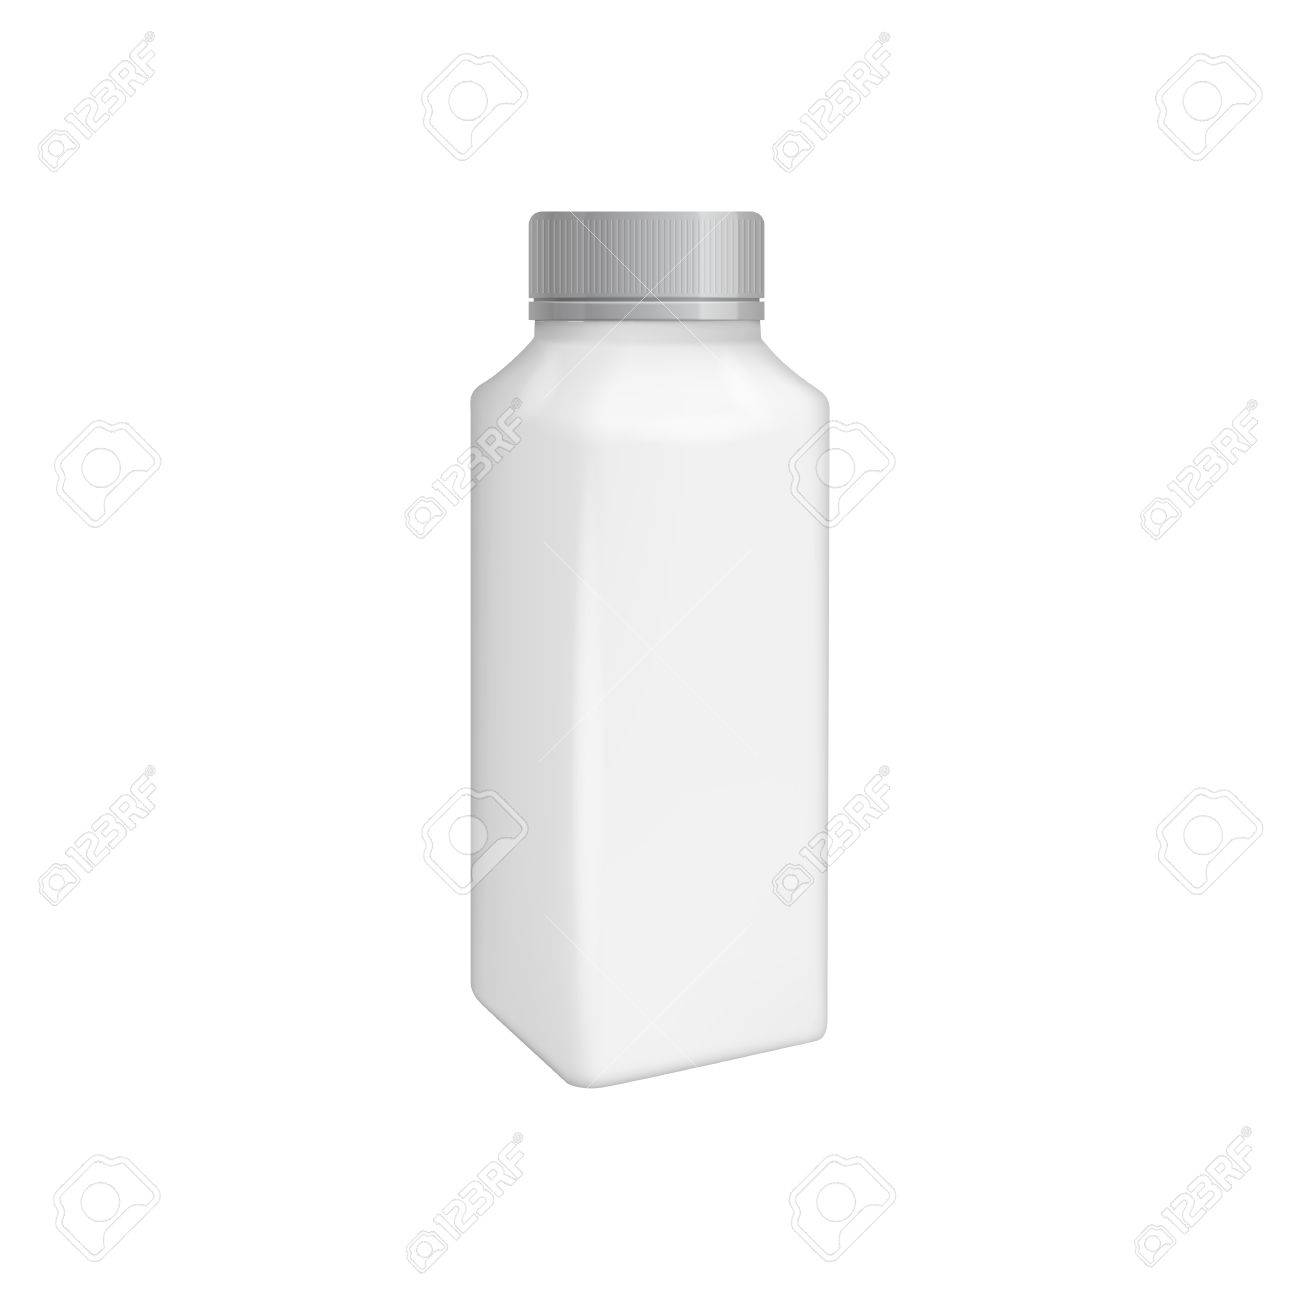 plastic bottle template for milk or yogurt product blank packaging